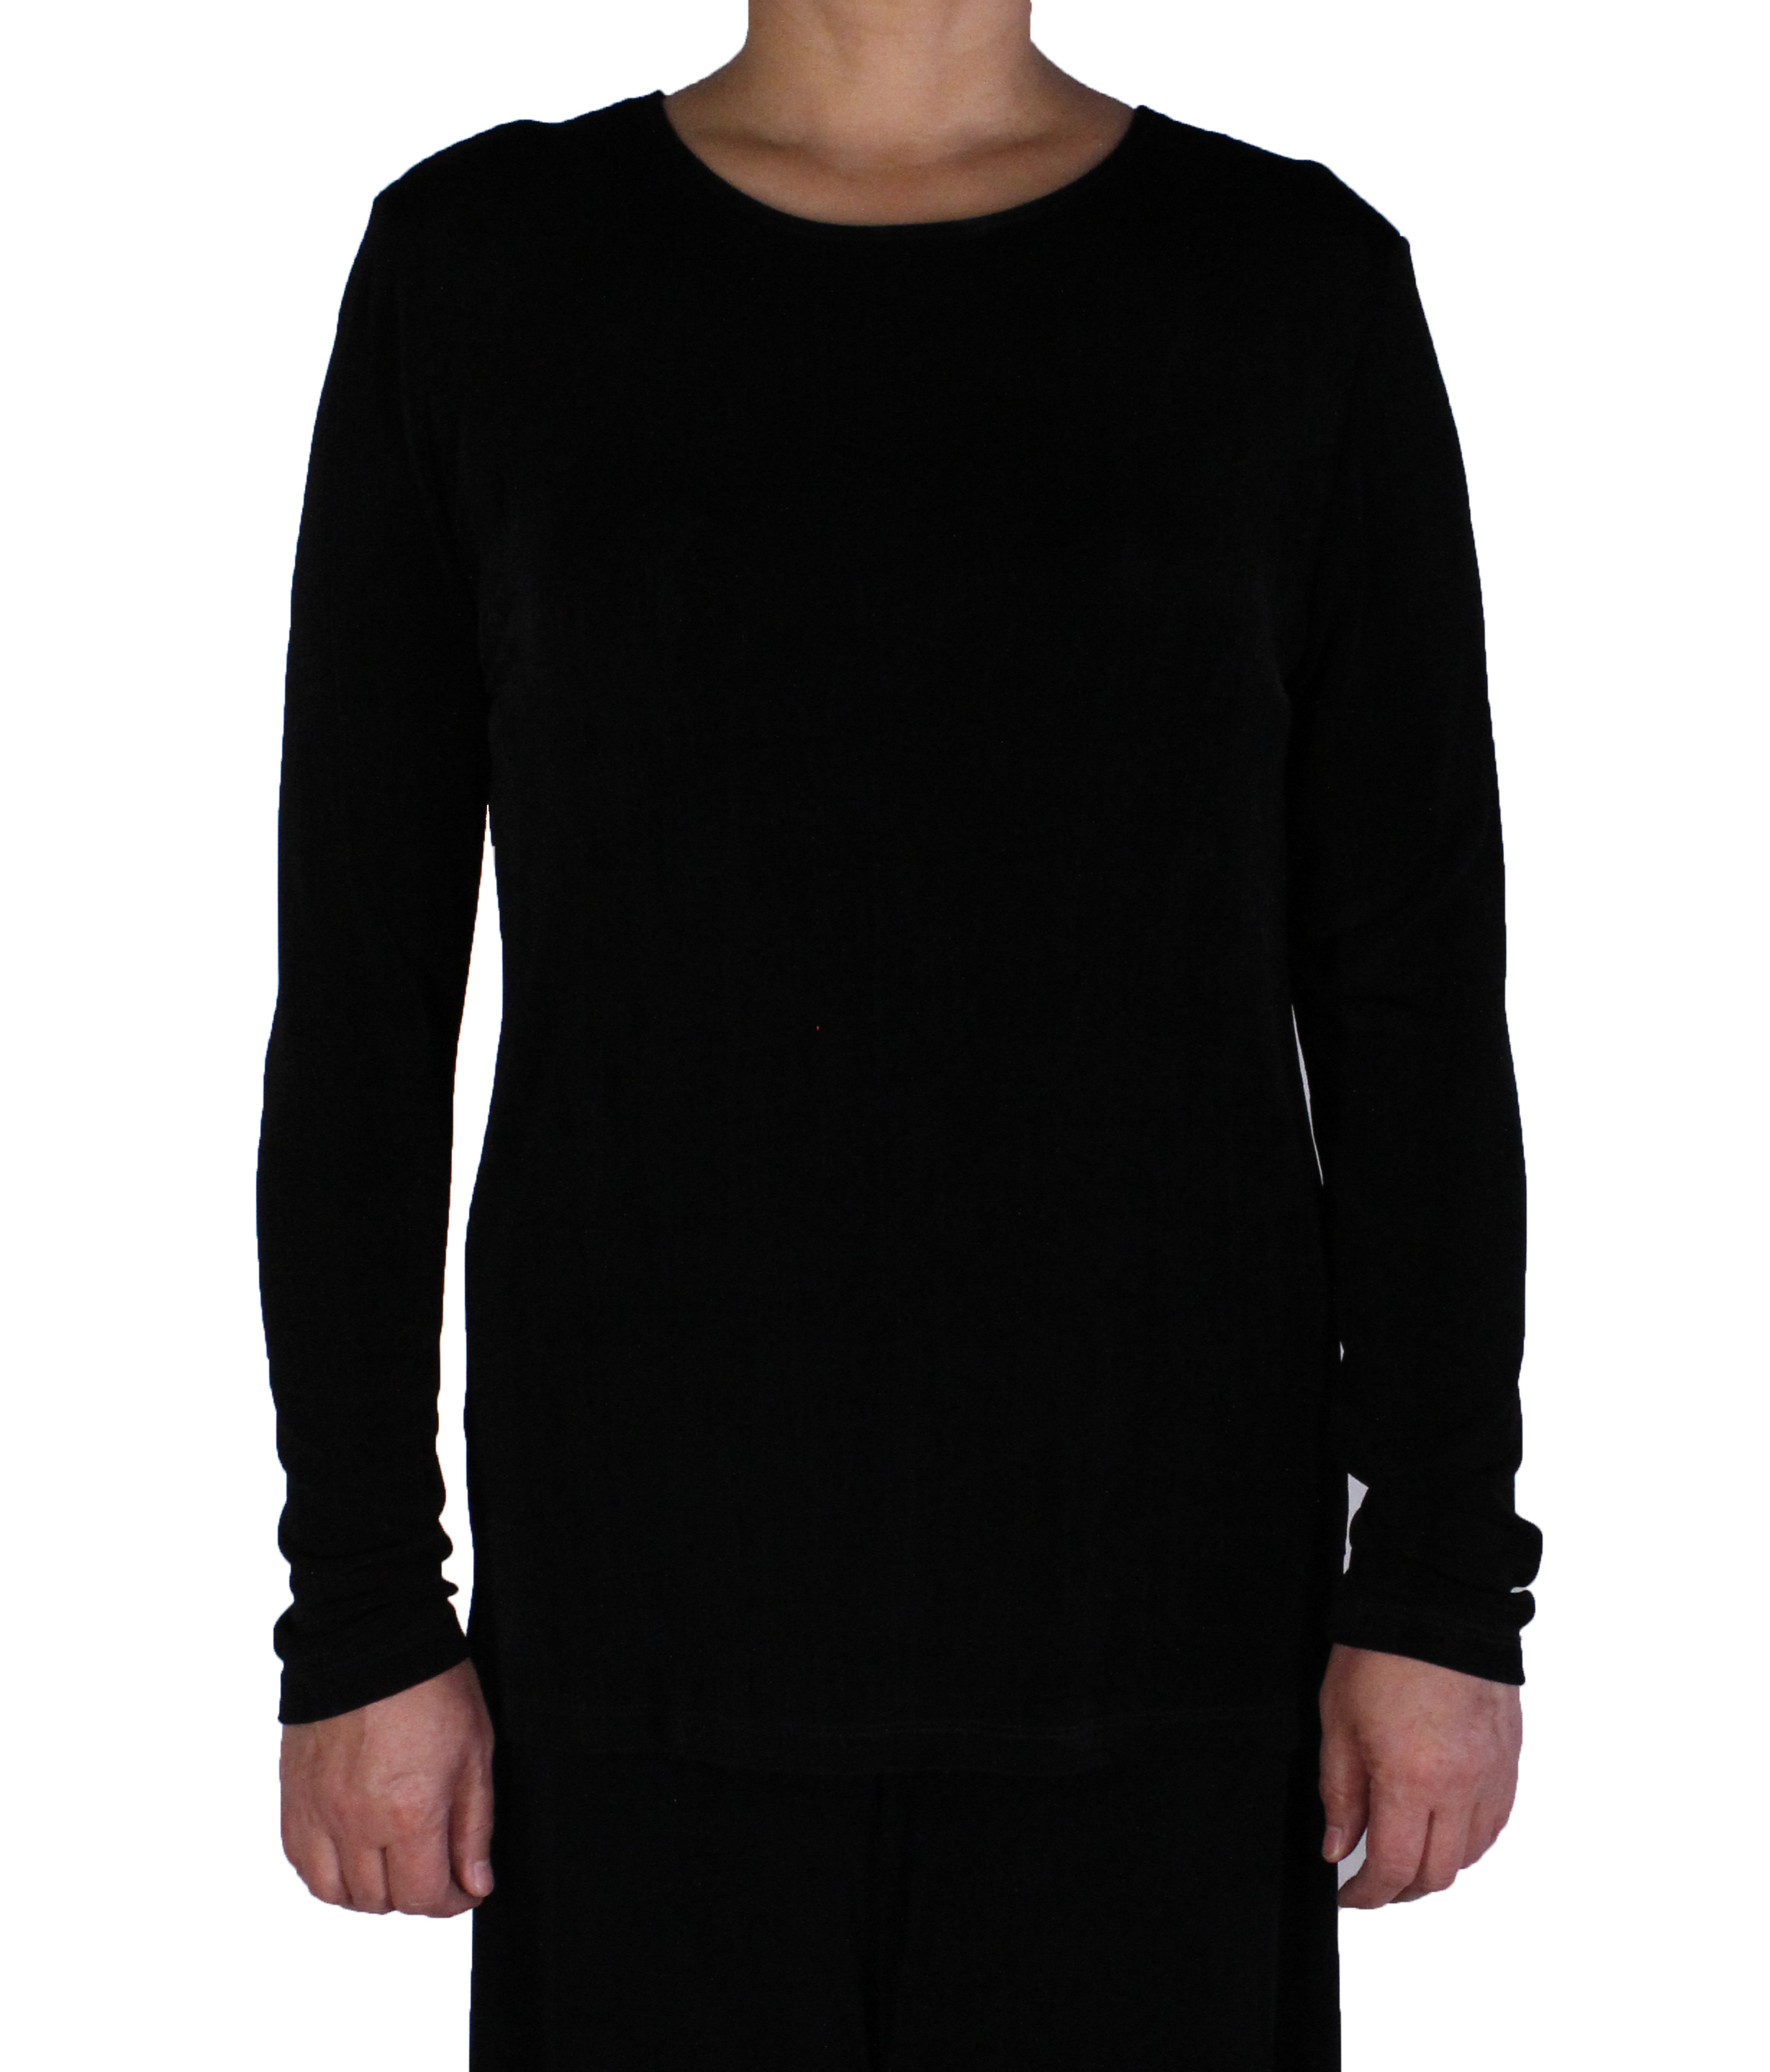 Women Slinky Jewel Neck Tunic Long Sleeve Top (016-1)